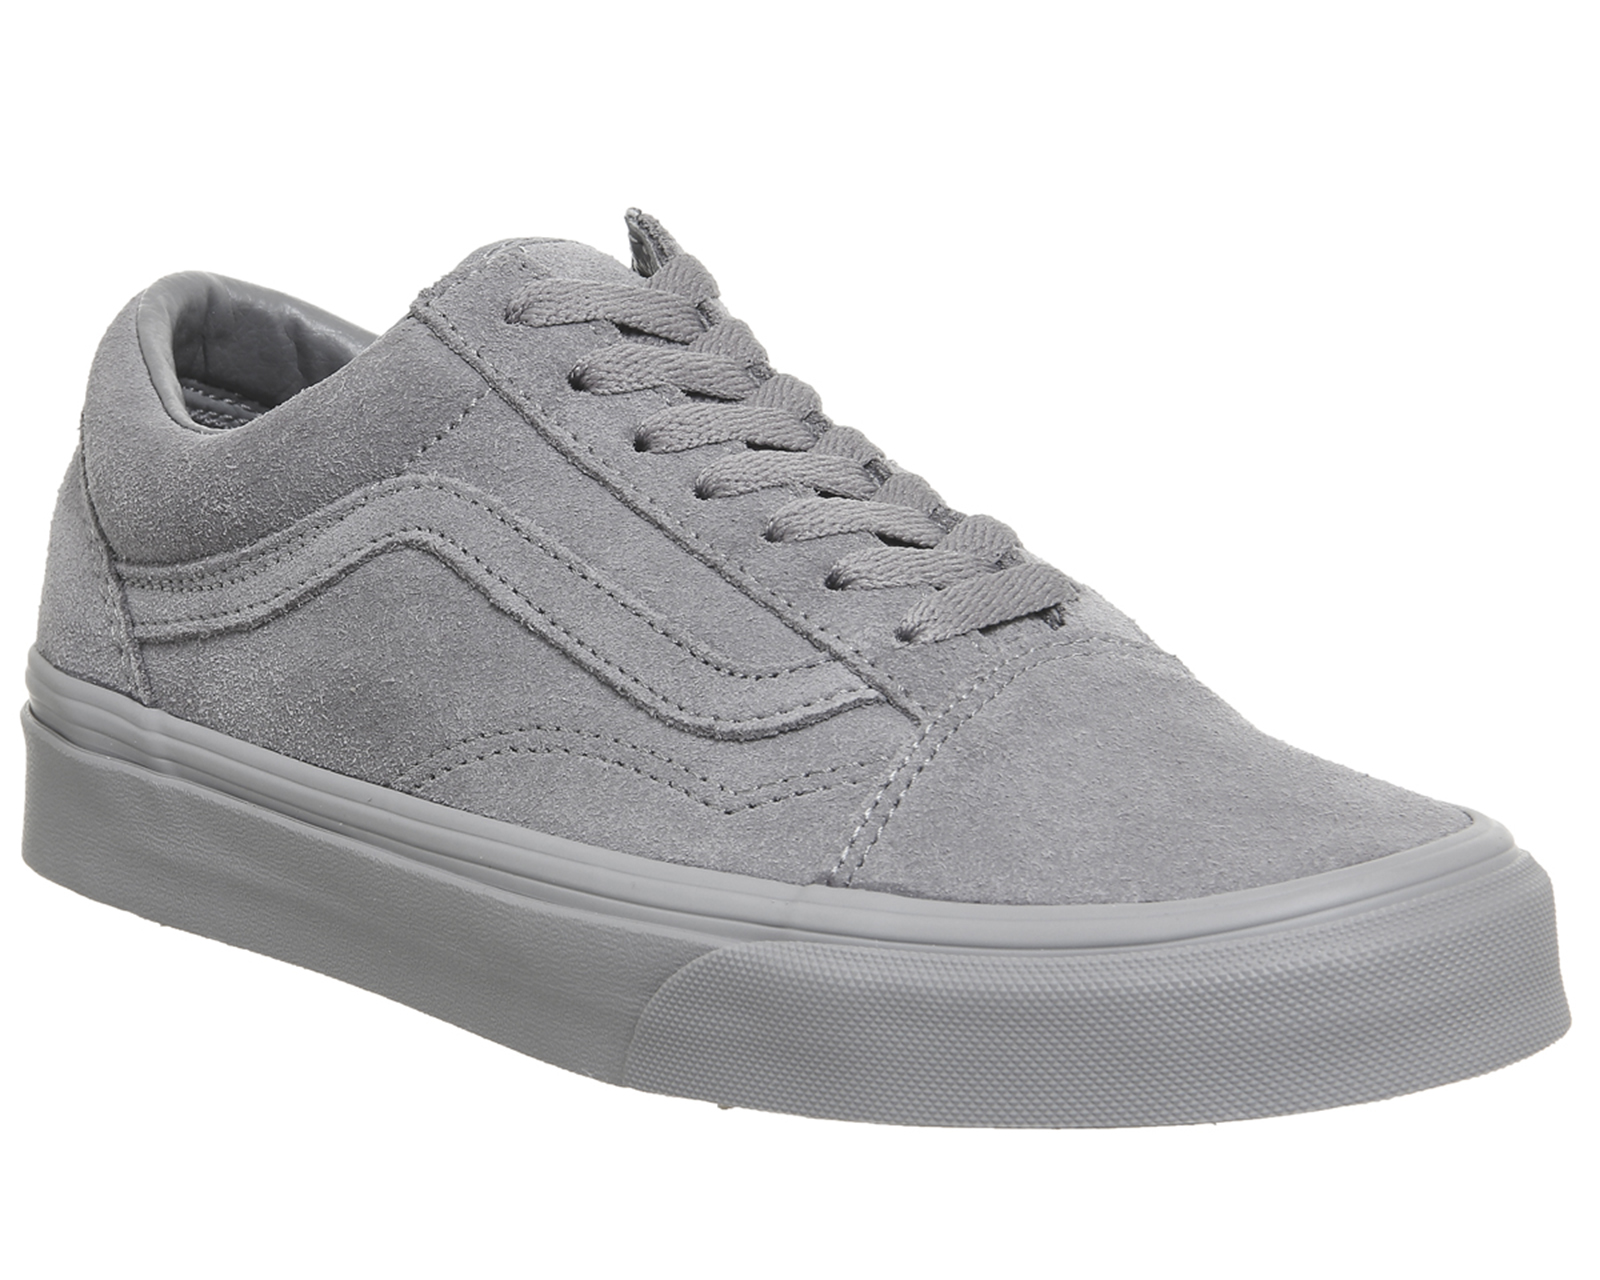 Sentinel Mens Vans Old Skool Trainers FROST GREY SUEDE EXCLUSIVE Trainers  Shoes 7afec41111ab